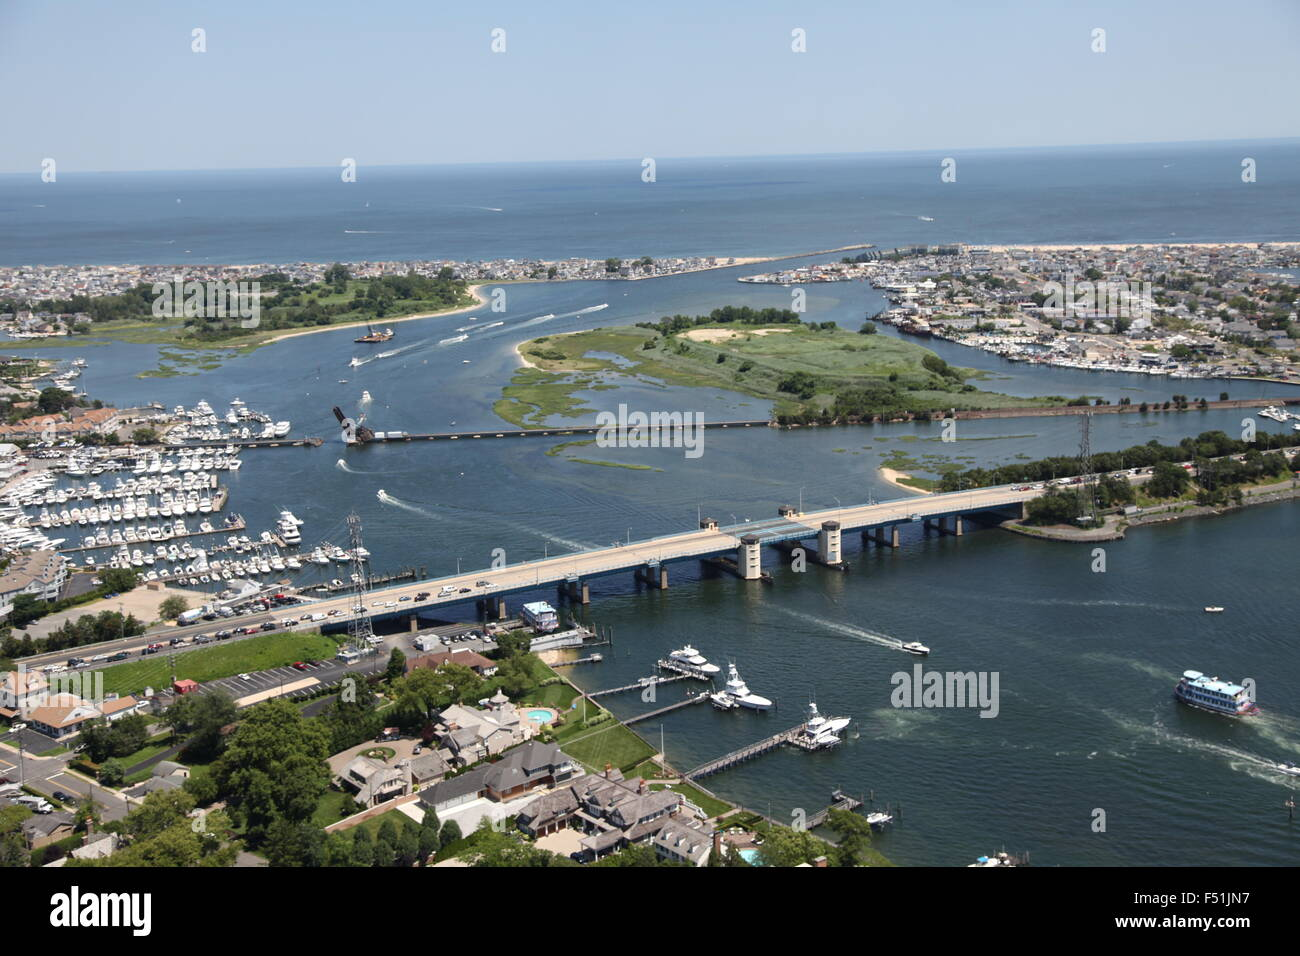 Aerial view of manasquan river and manasquan inlet near for Manasquan inlet fishing